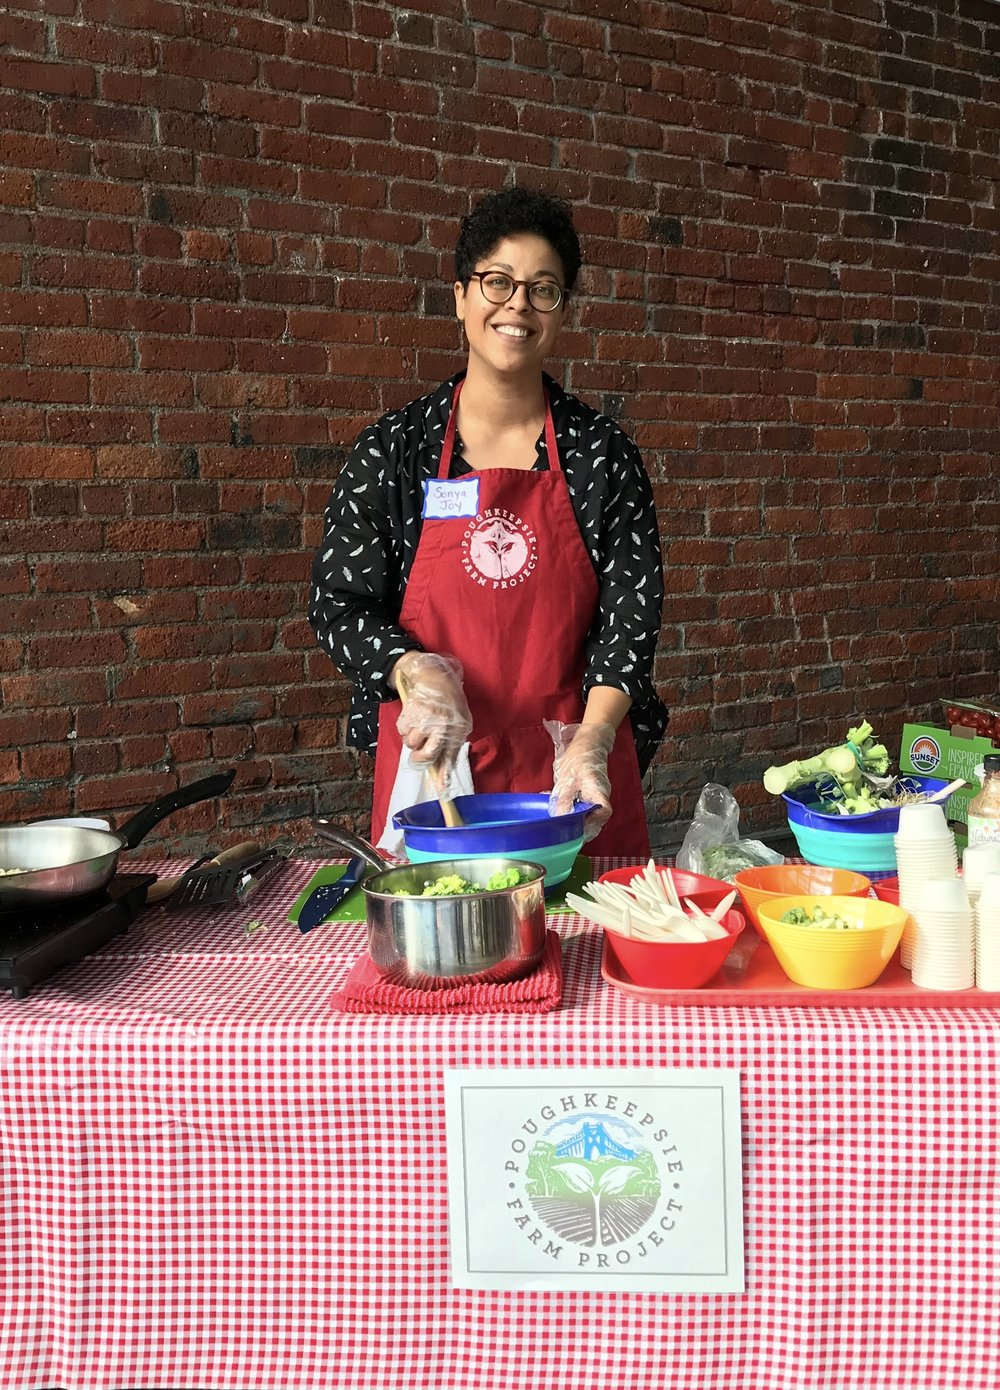 Chef Key offers tastes of healthy dishes prepared with produce available at the Free Farm Stand.